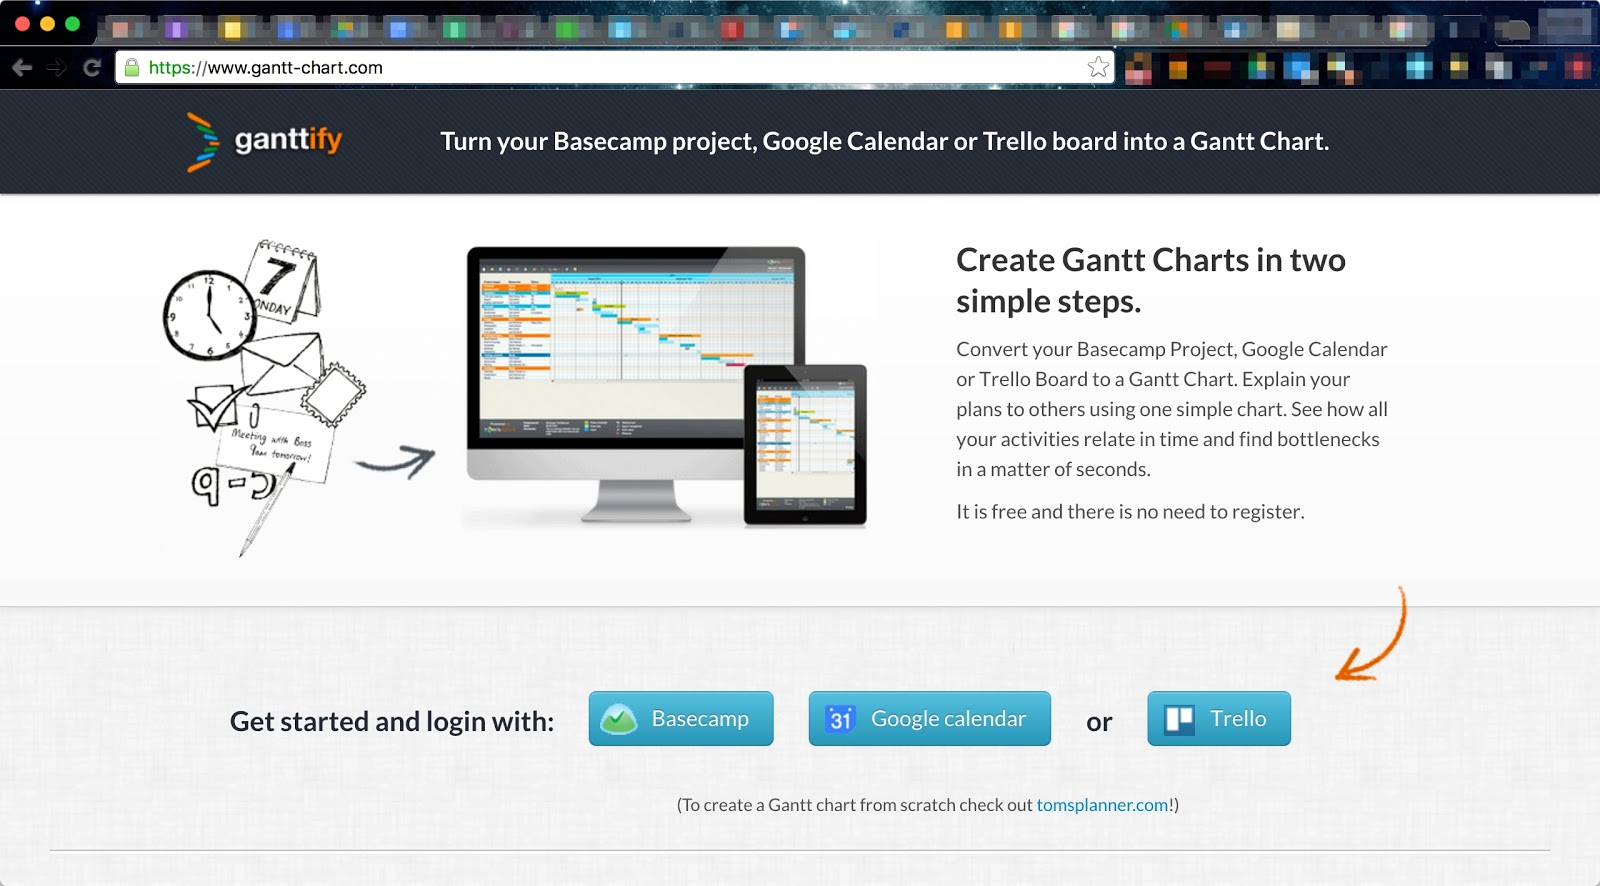 Gantt_charts_for_Basecamp__Google_Calendar_and_Trello.jpg